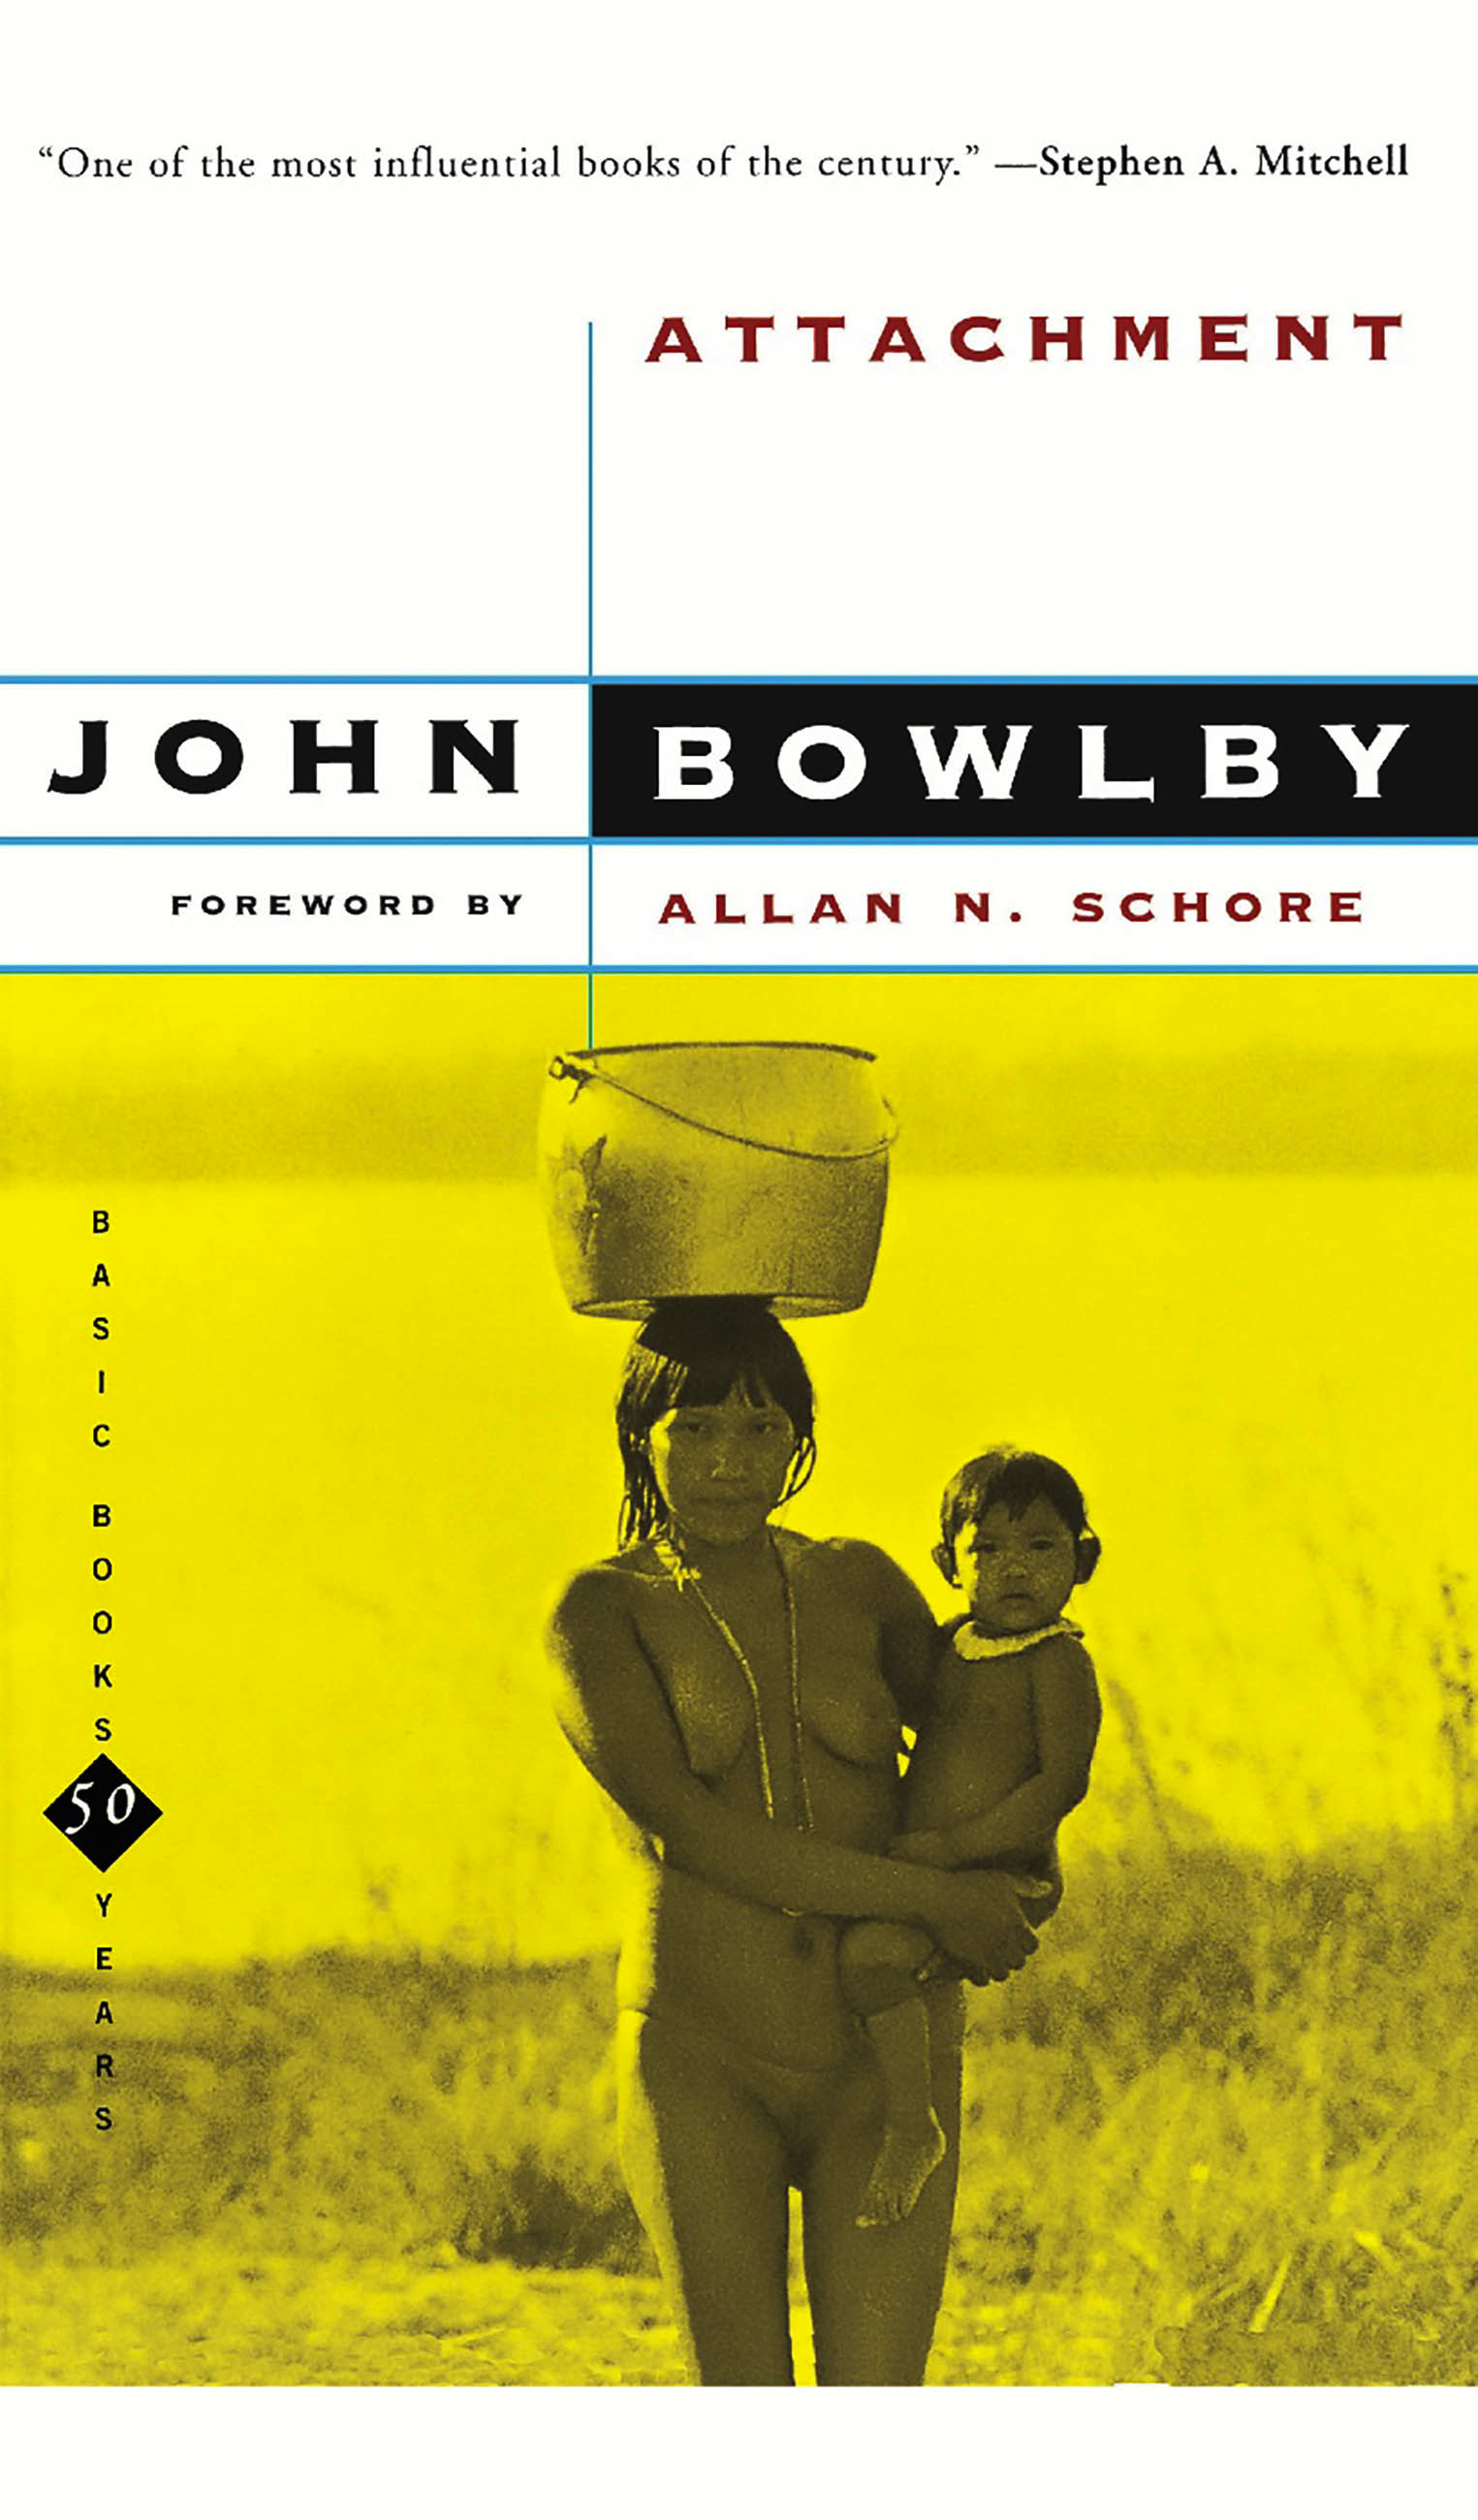 the life and works of john bowlby